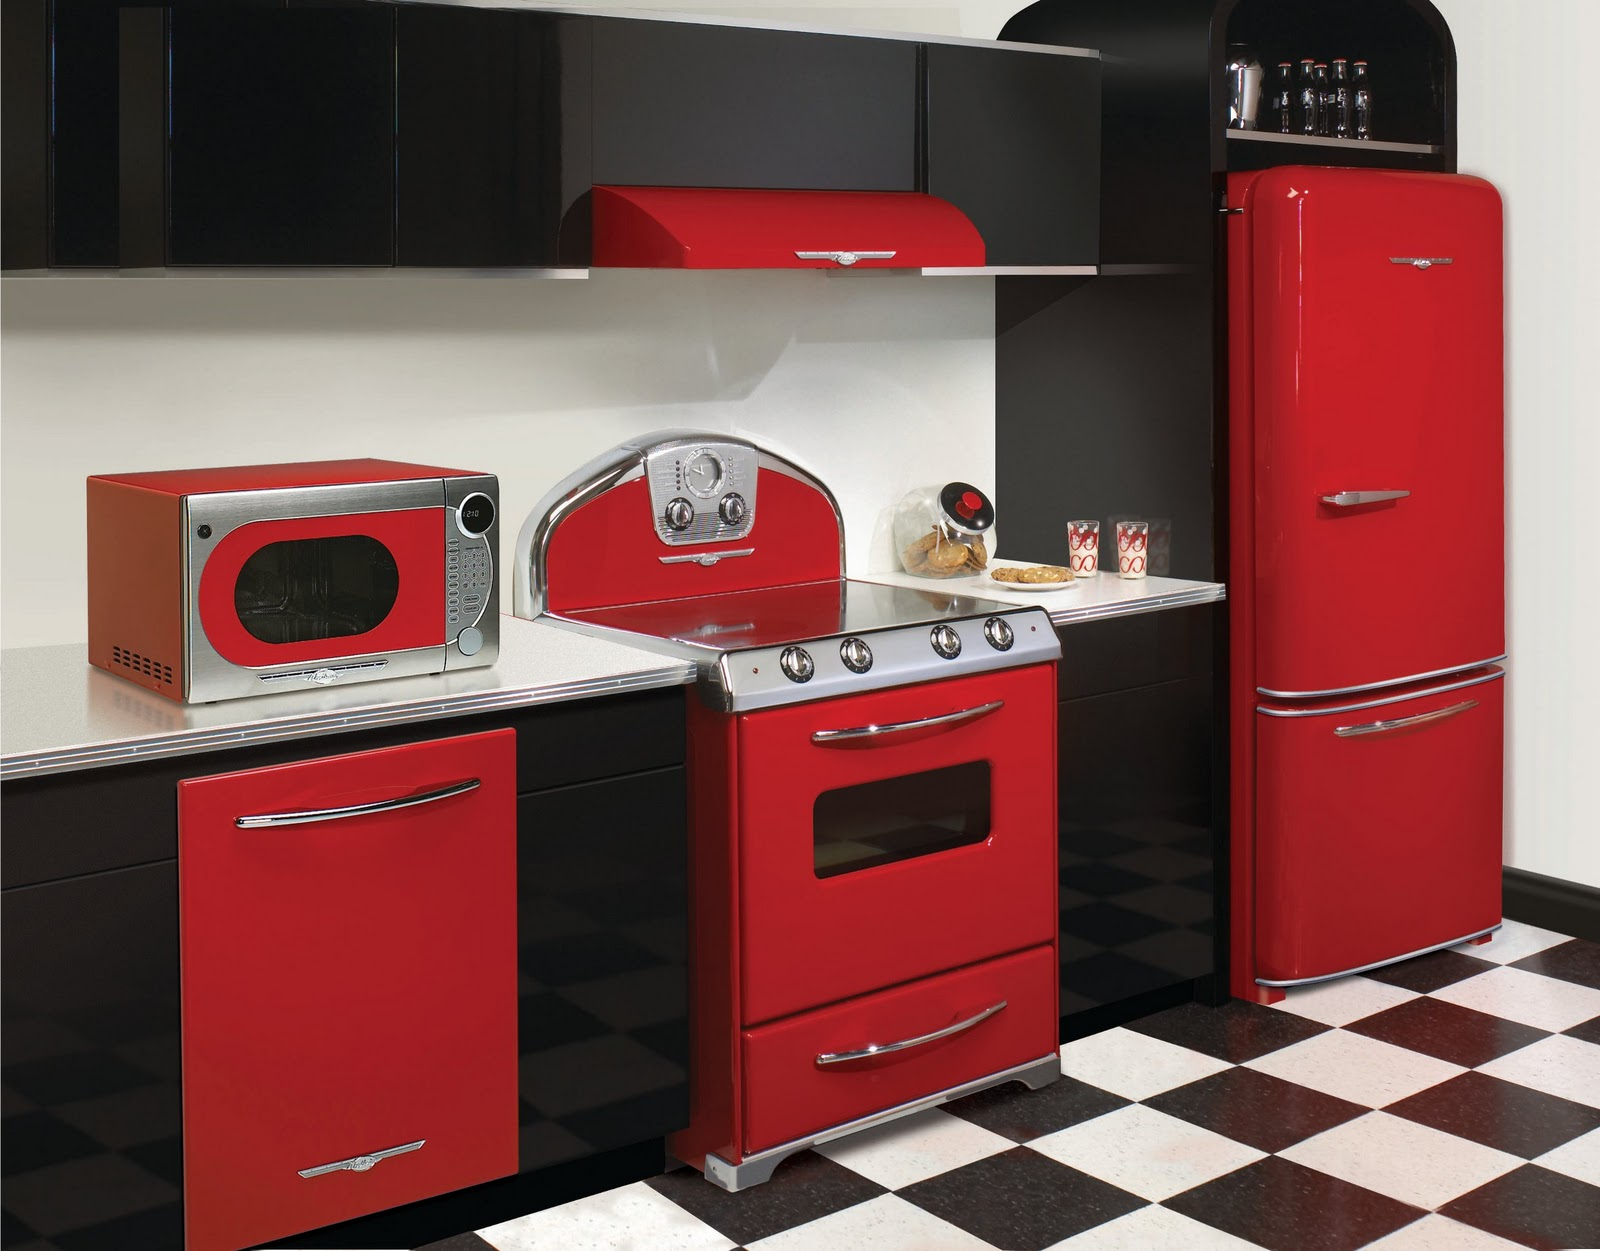 Retro Kitchen Appliances Nz